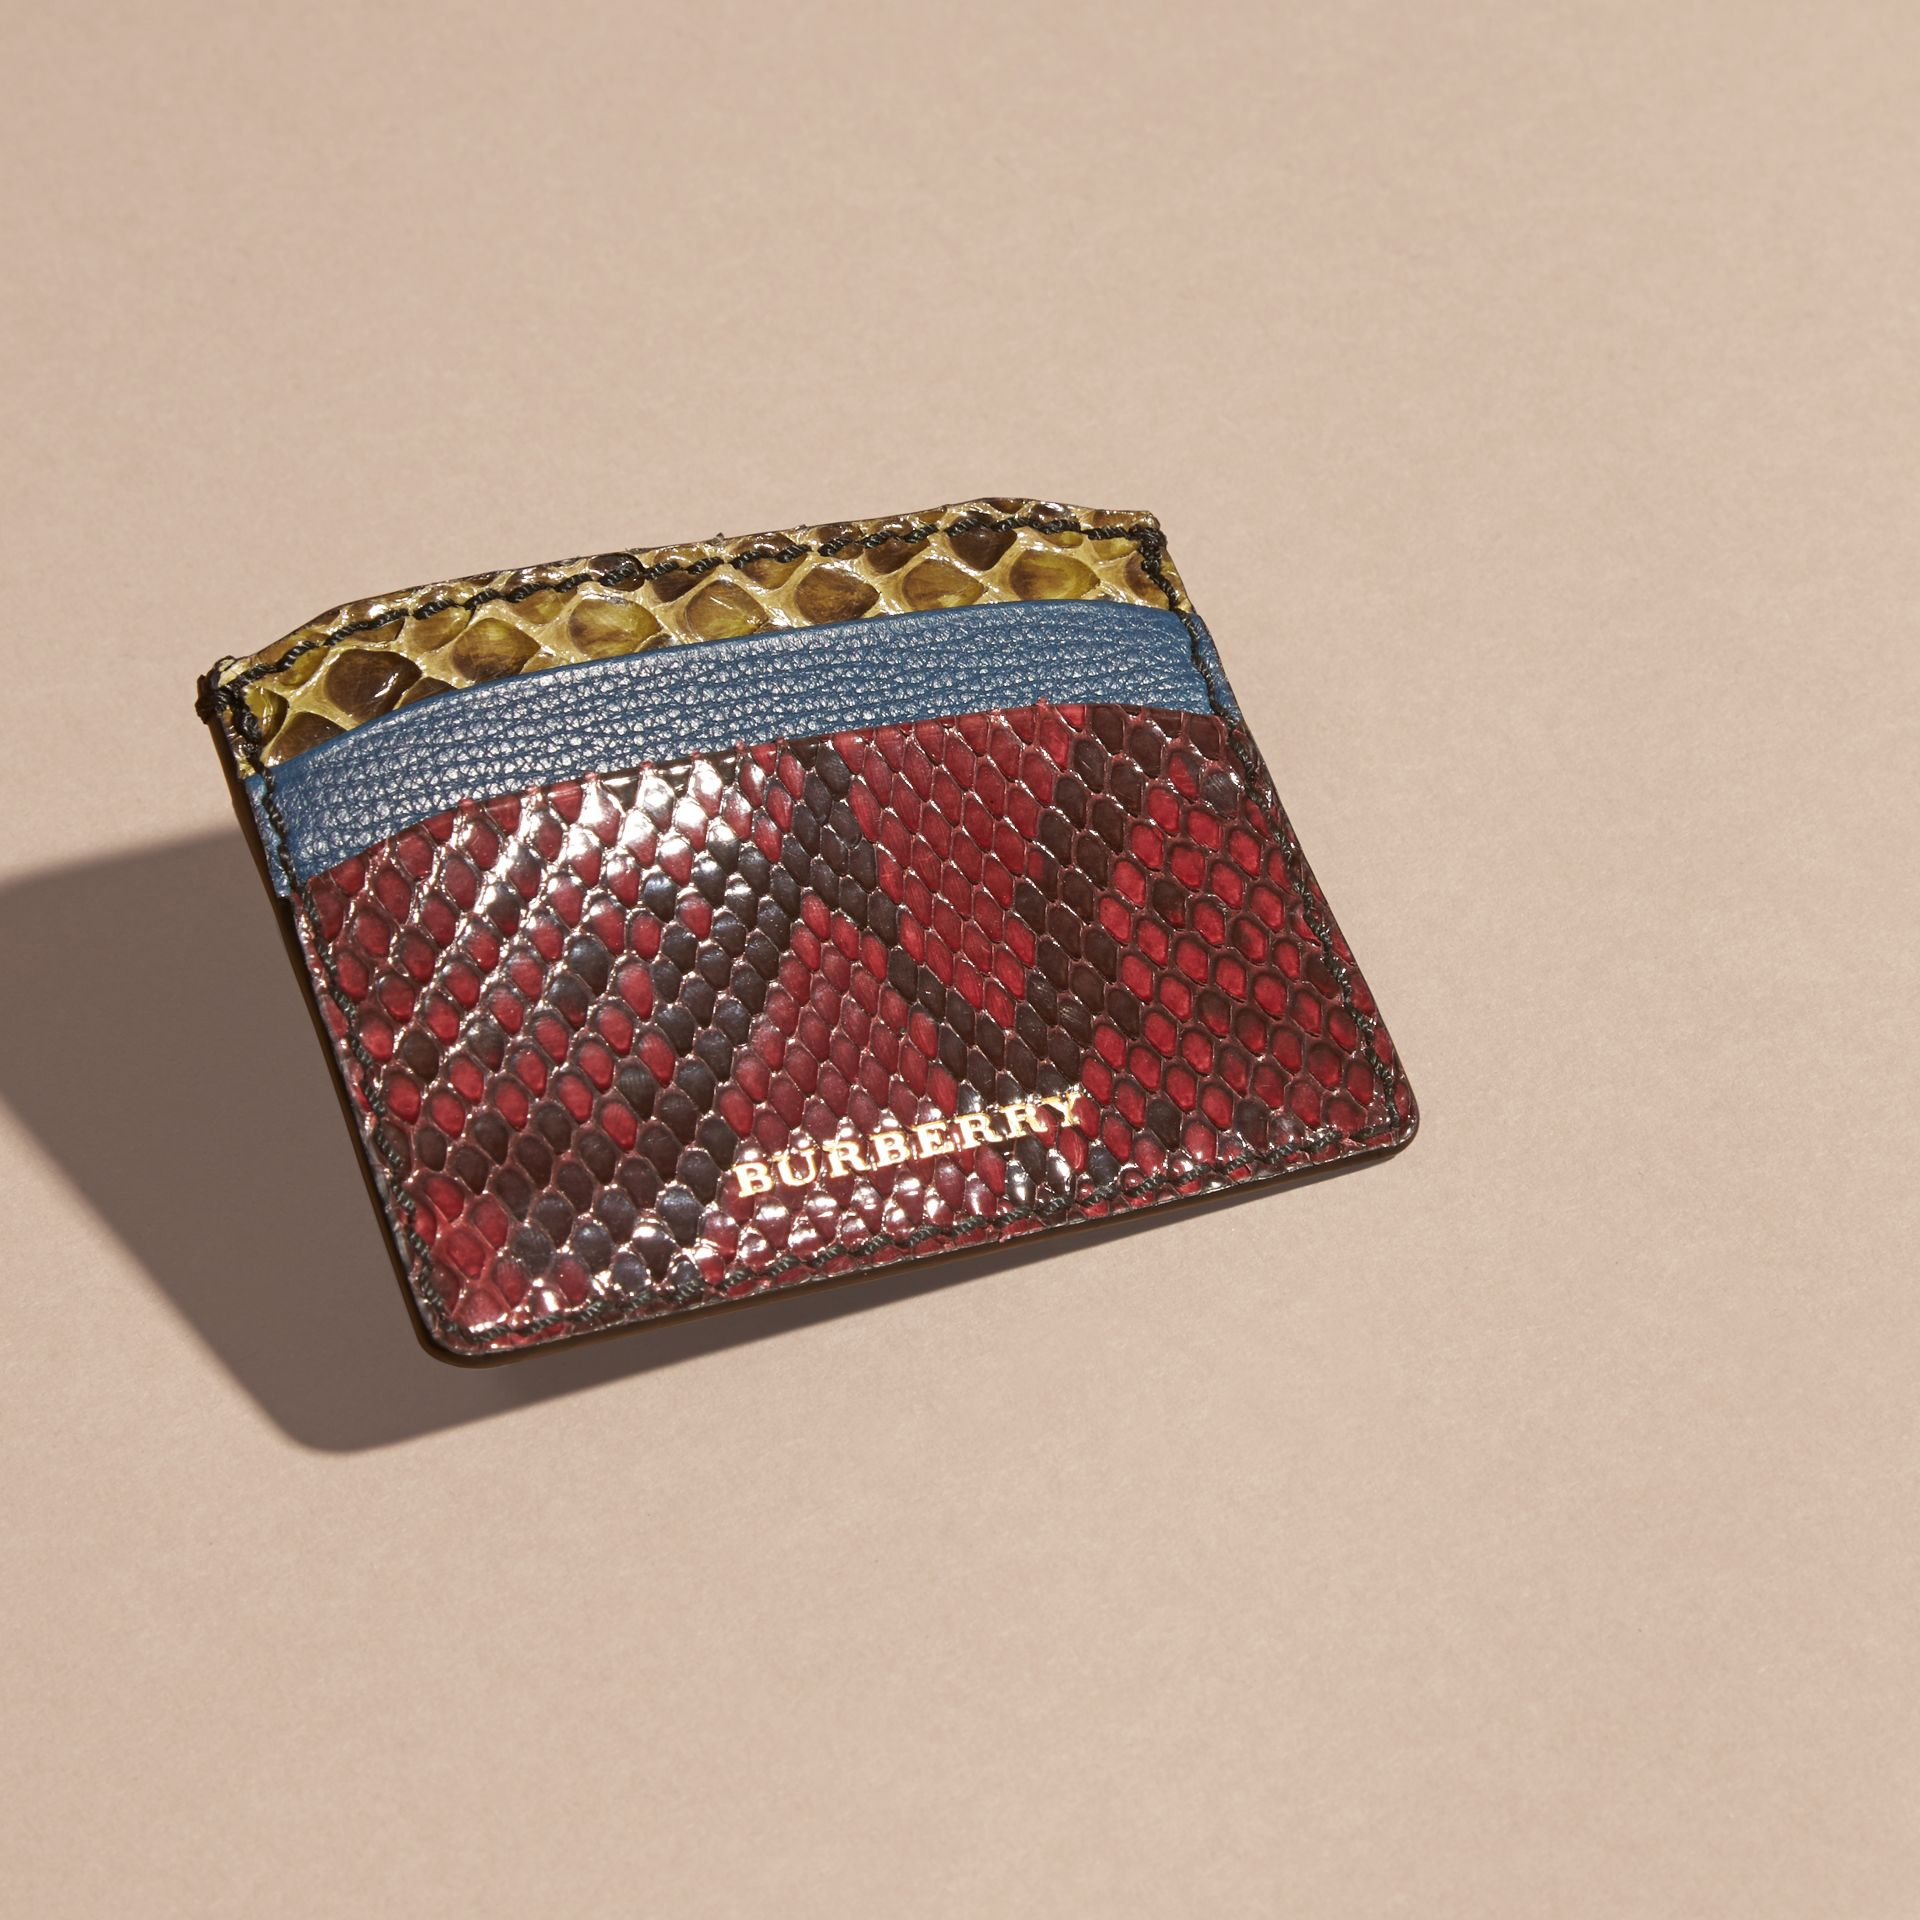 Colour Block Snakeskin and Leather Card Case in Peacock Blue - gallery image 3